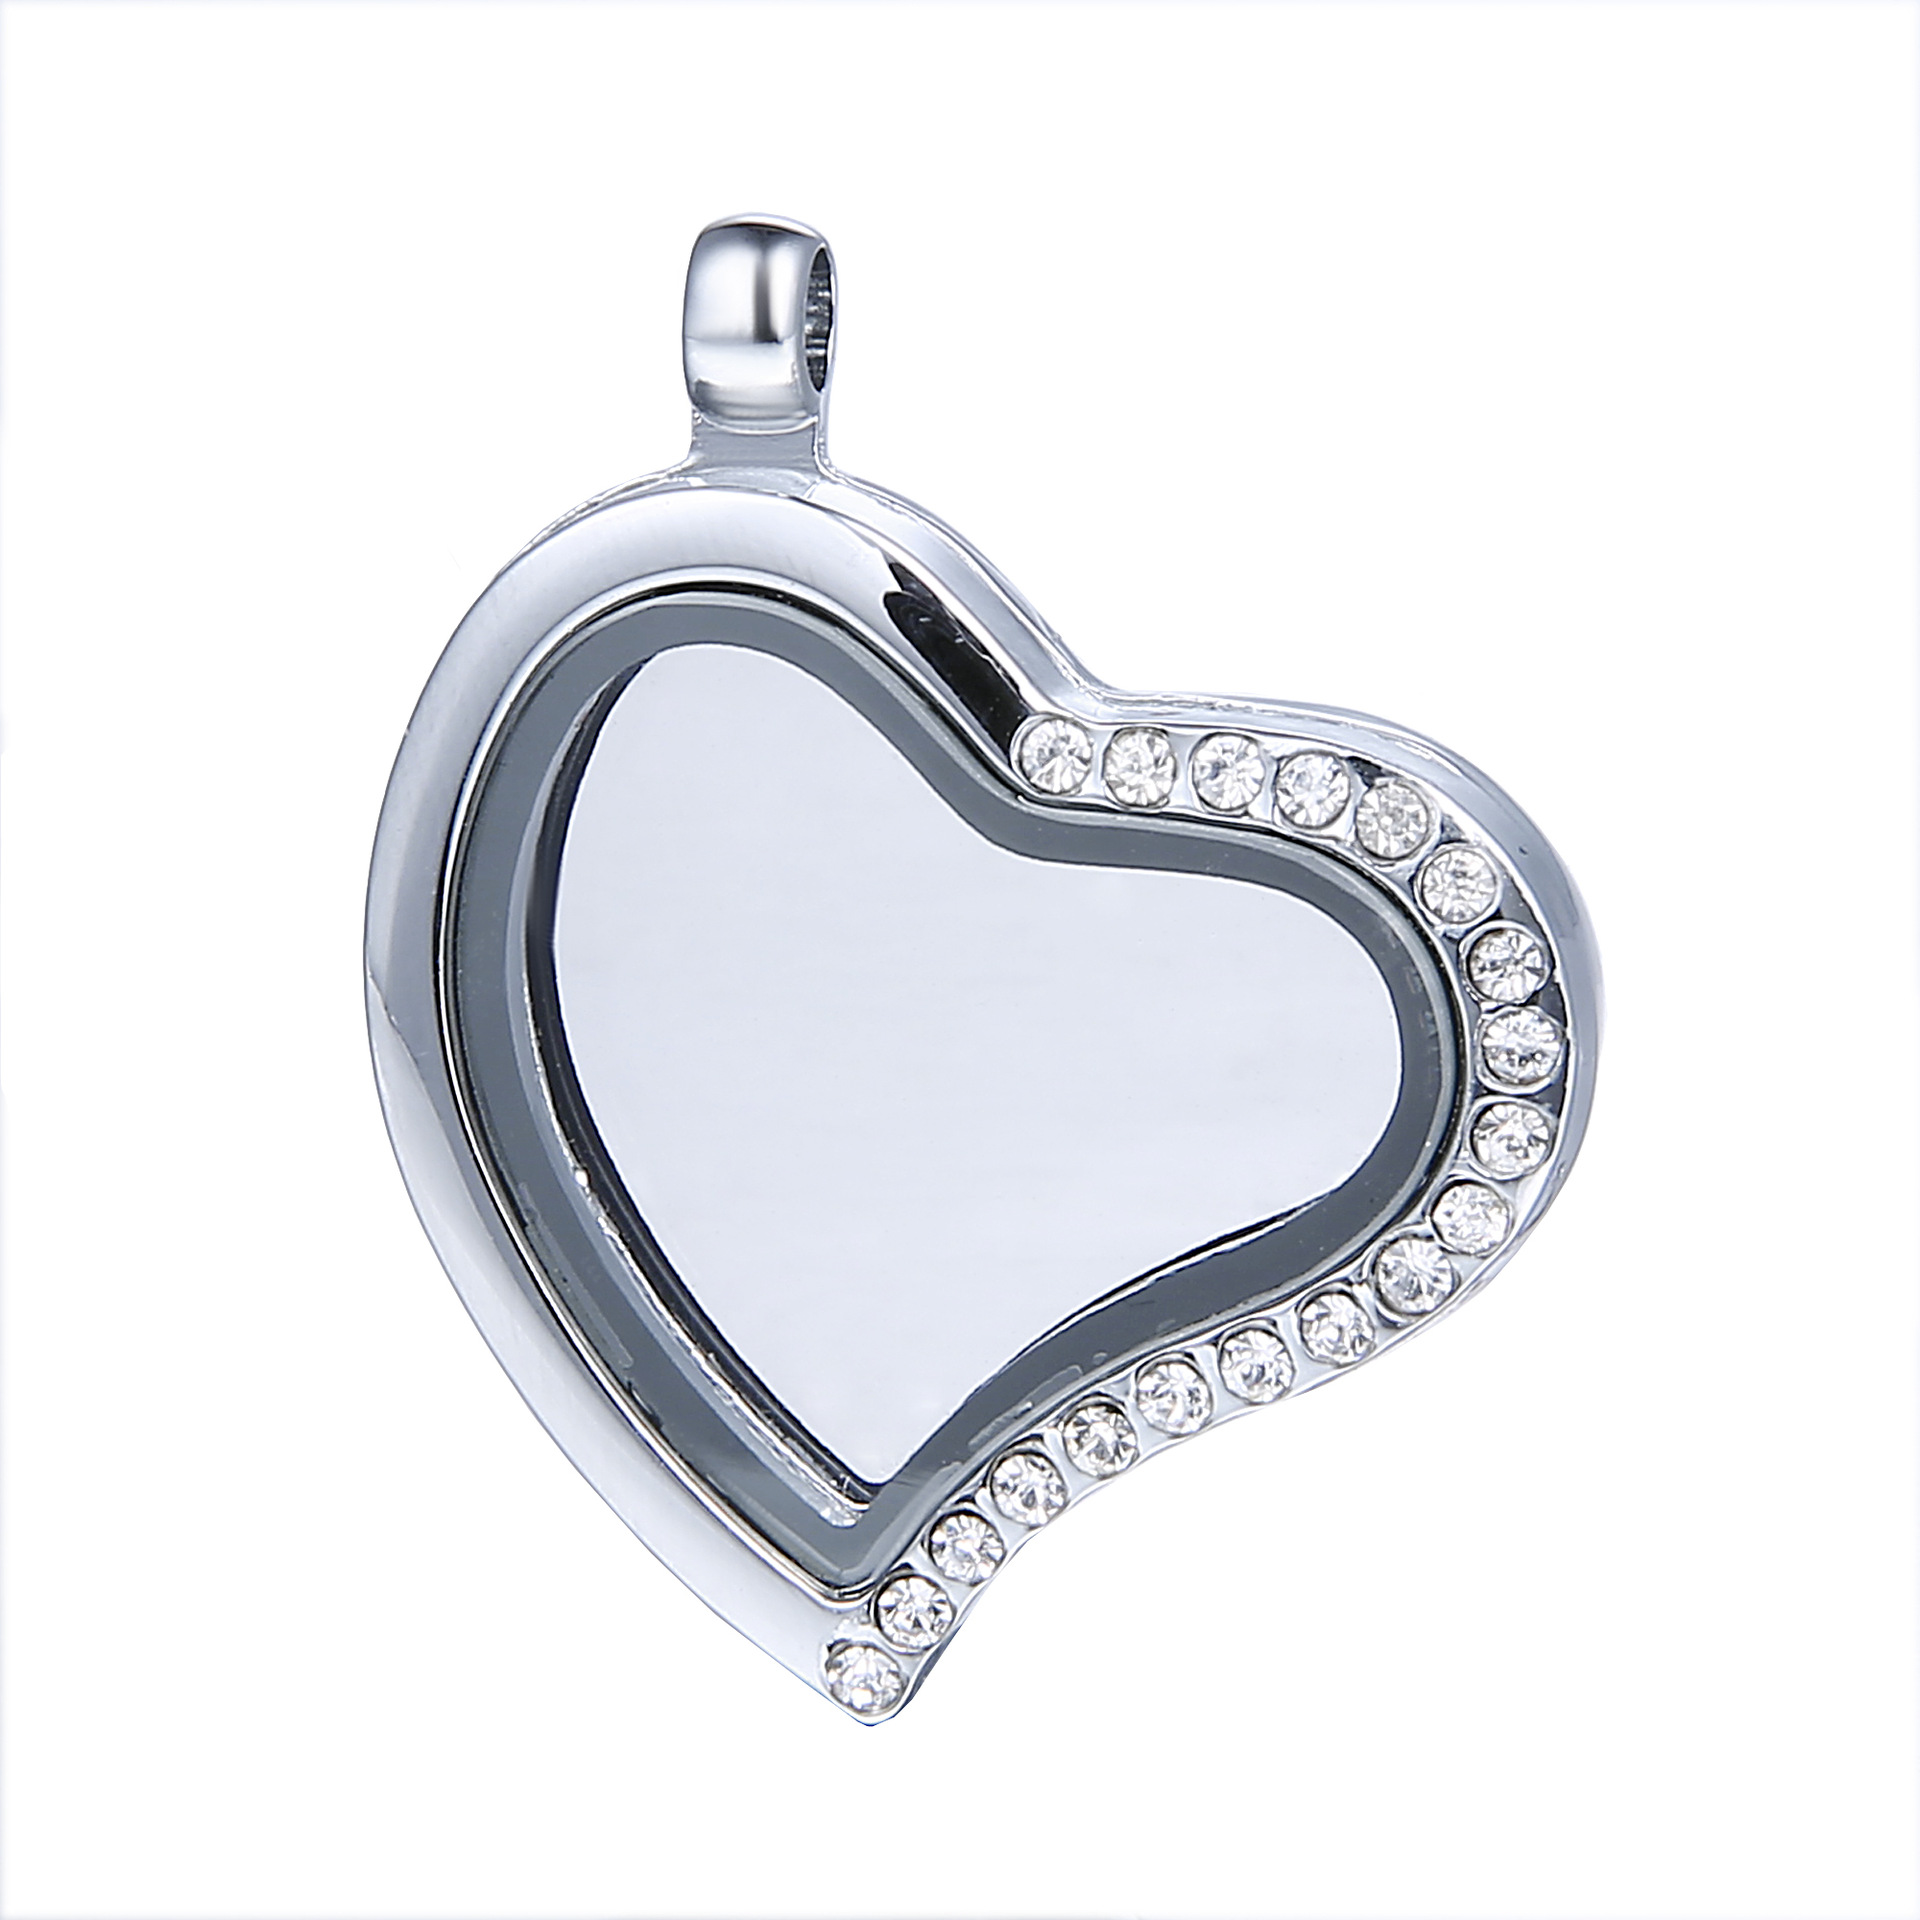 jewellery half online q co lockets locket c original buy fishpond nz heart photo necklaces from